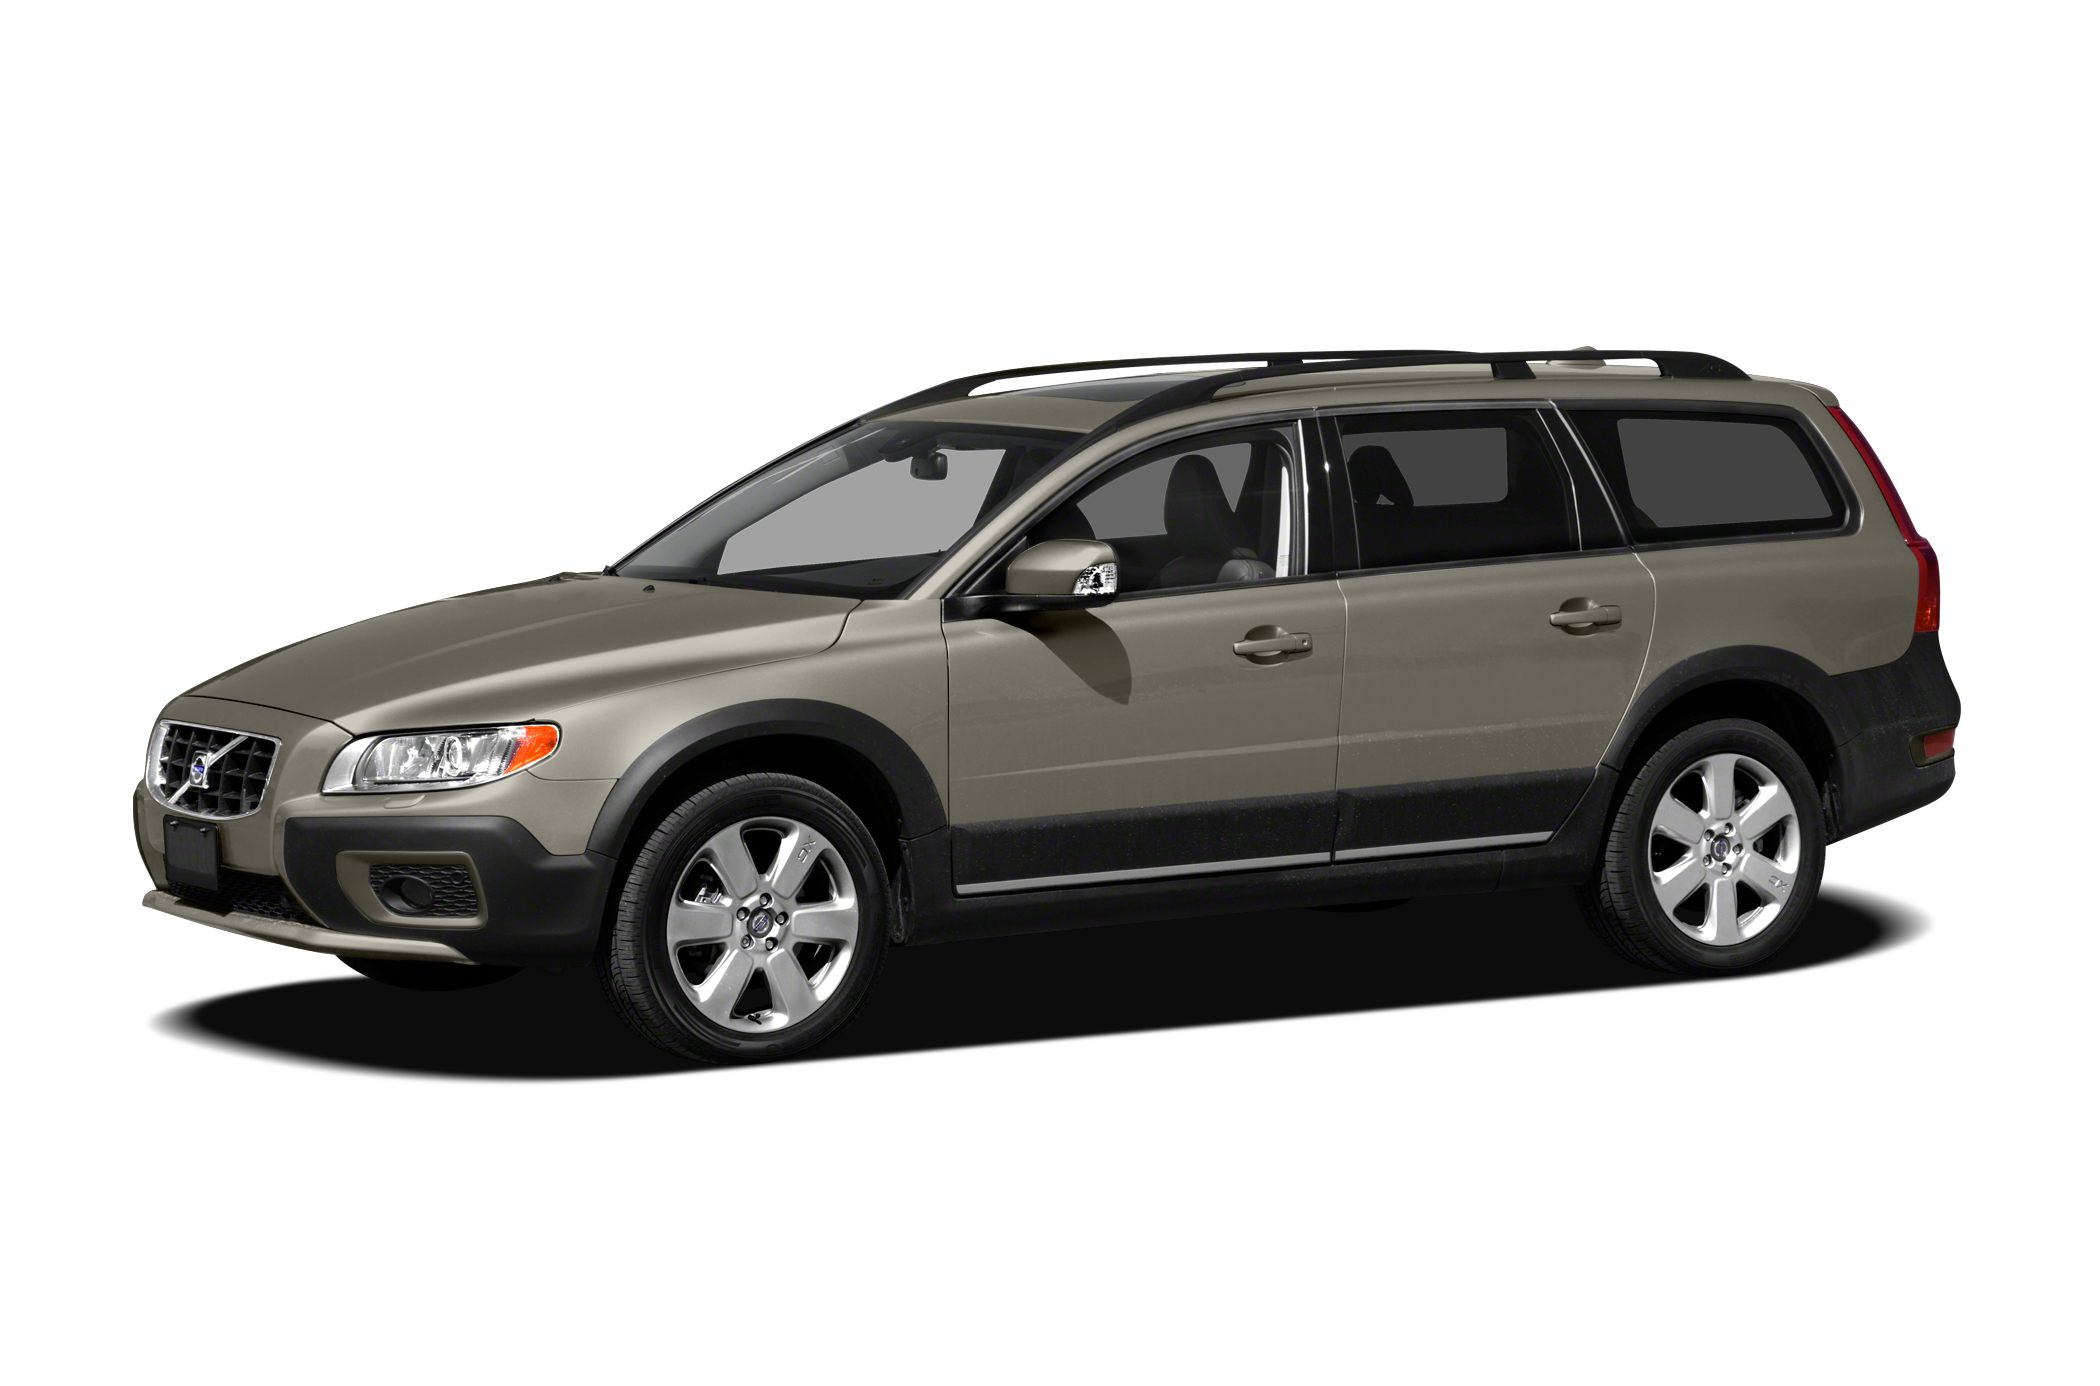 2011 Volvo XC70 Specs, Safety Rating & MPG - CarsDirect